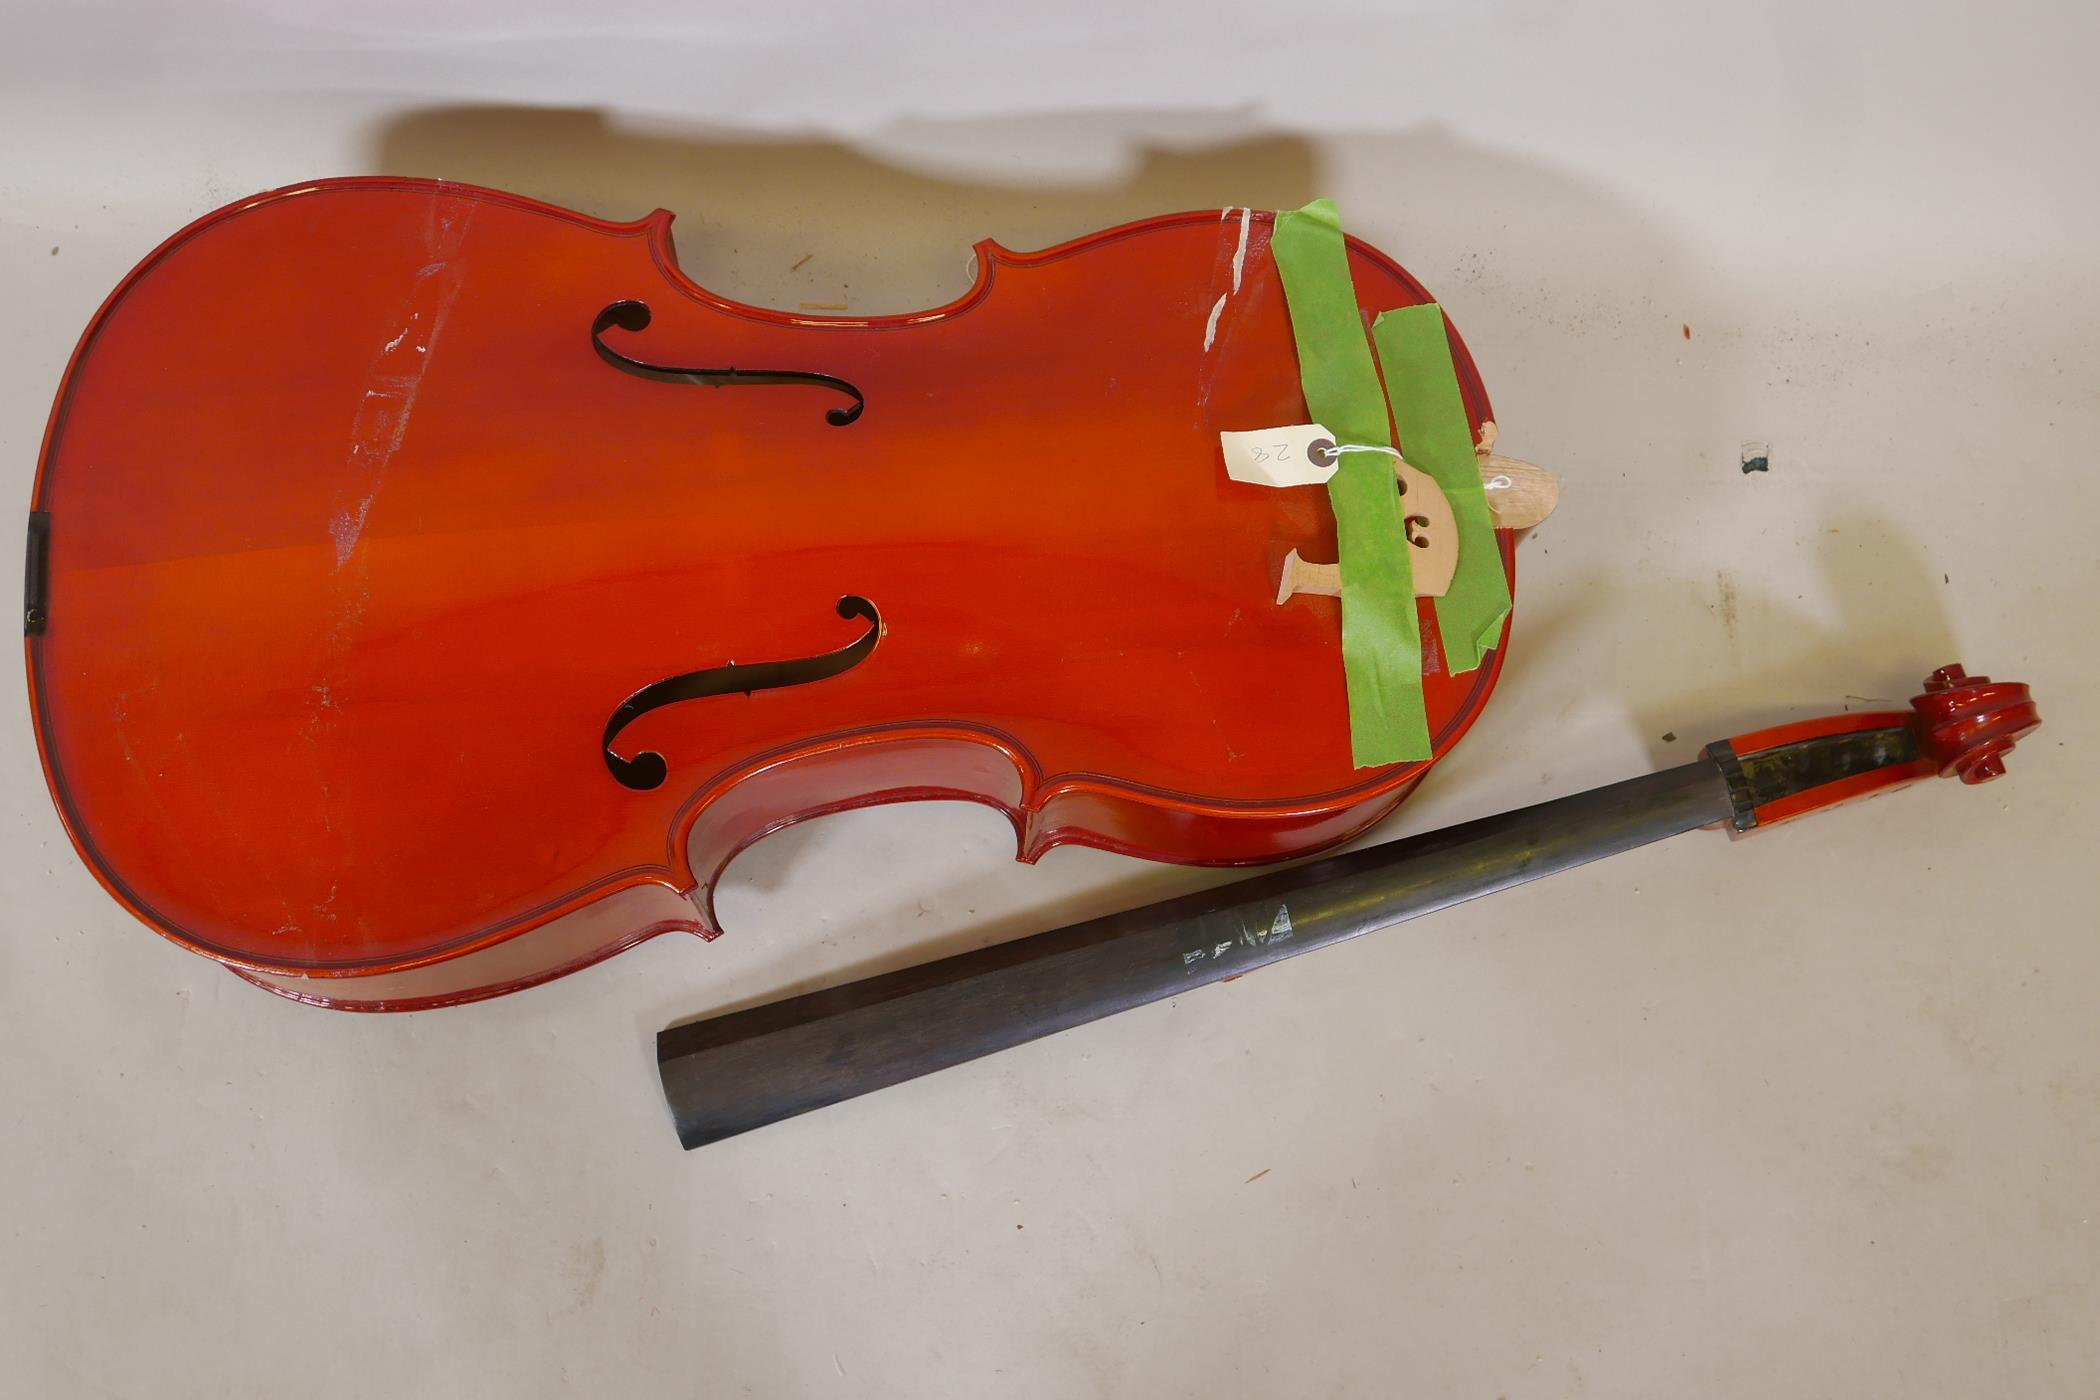 A cello for restoration, no tuning pegs